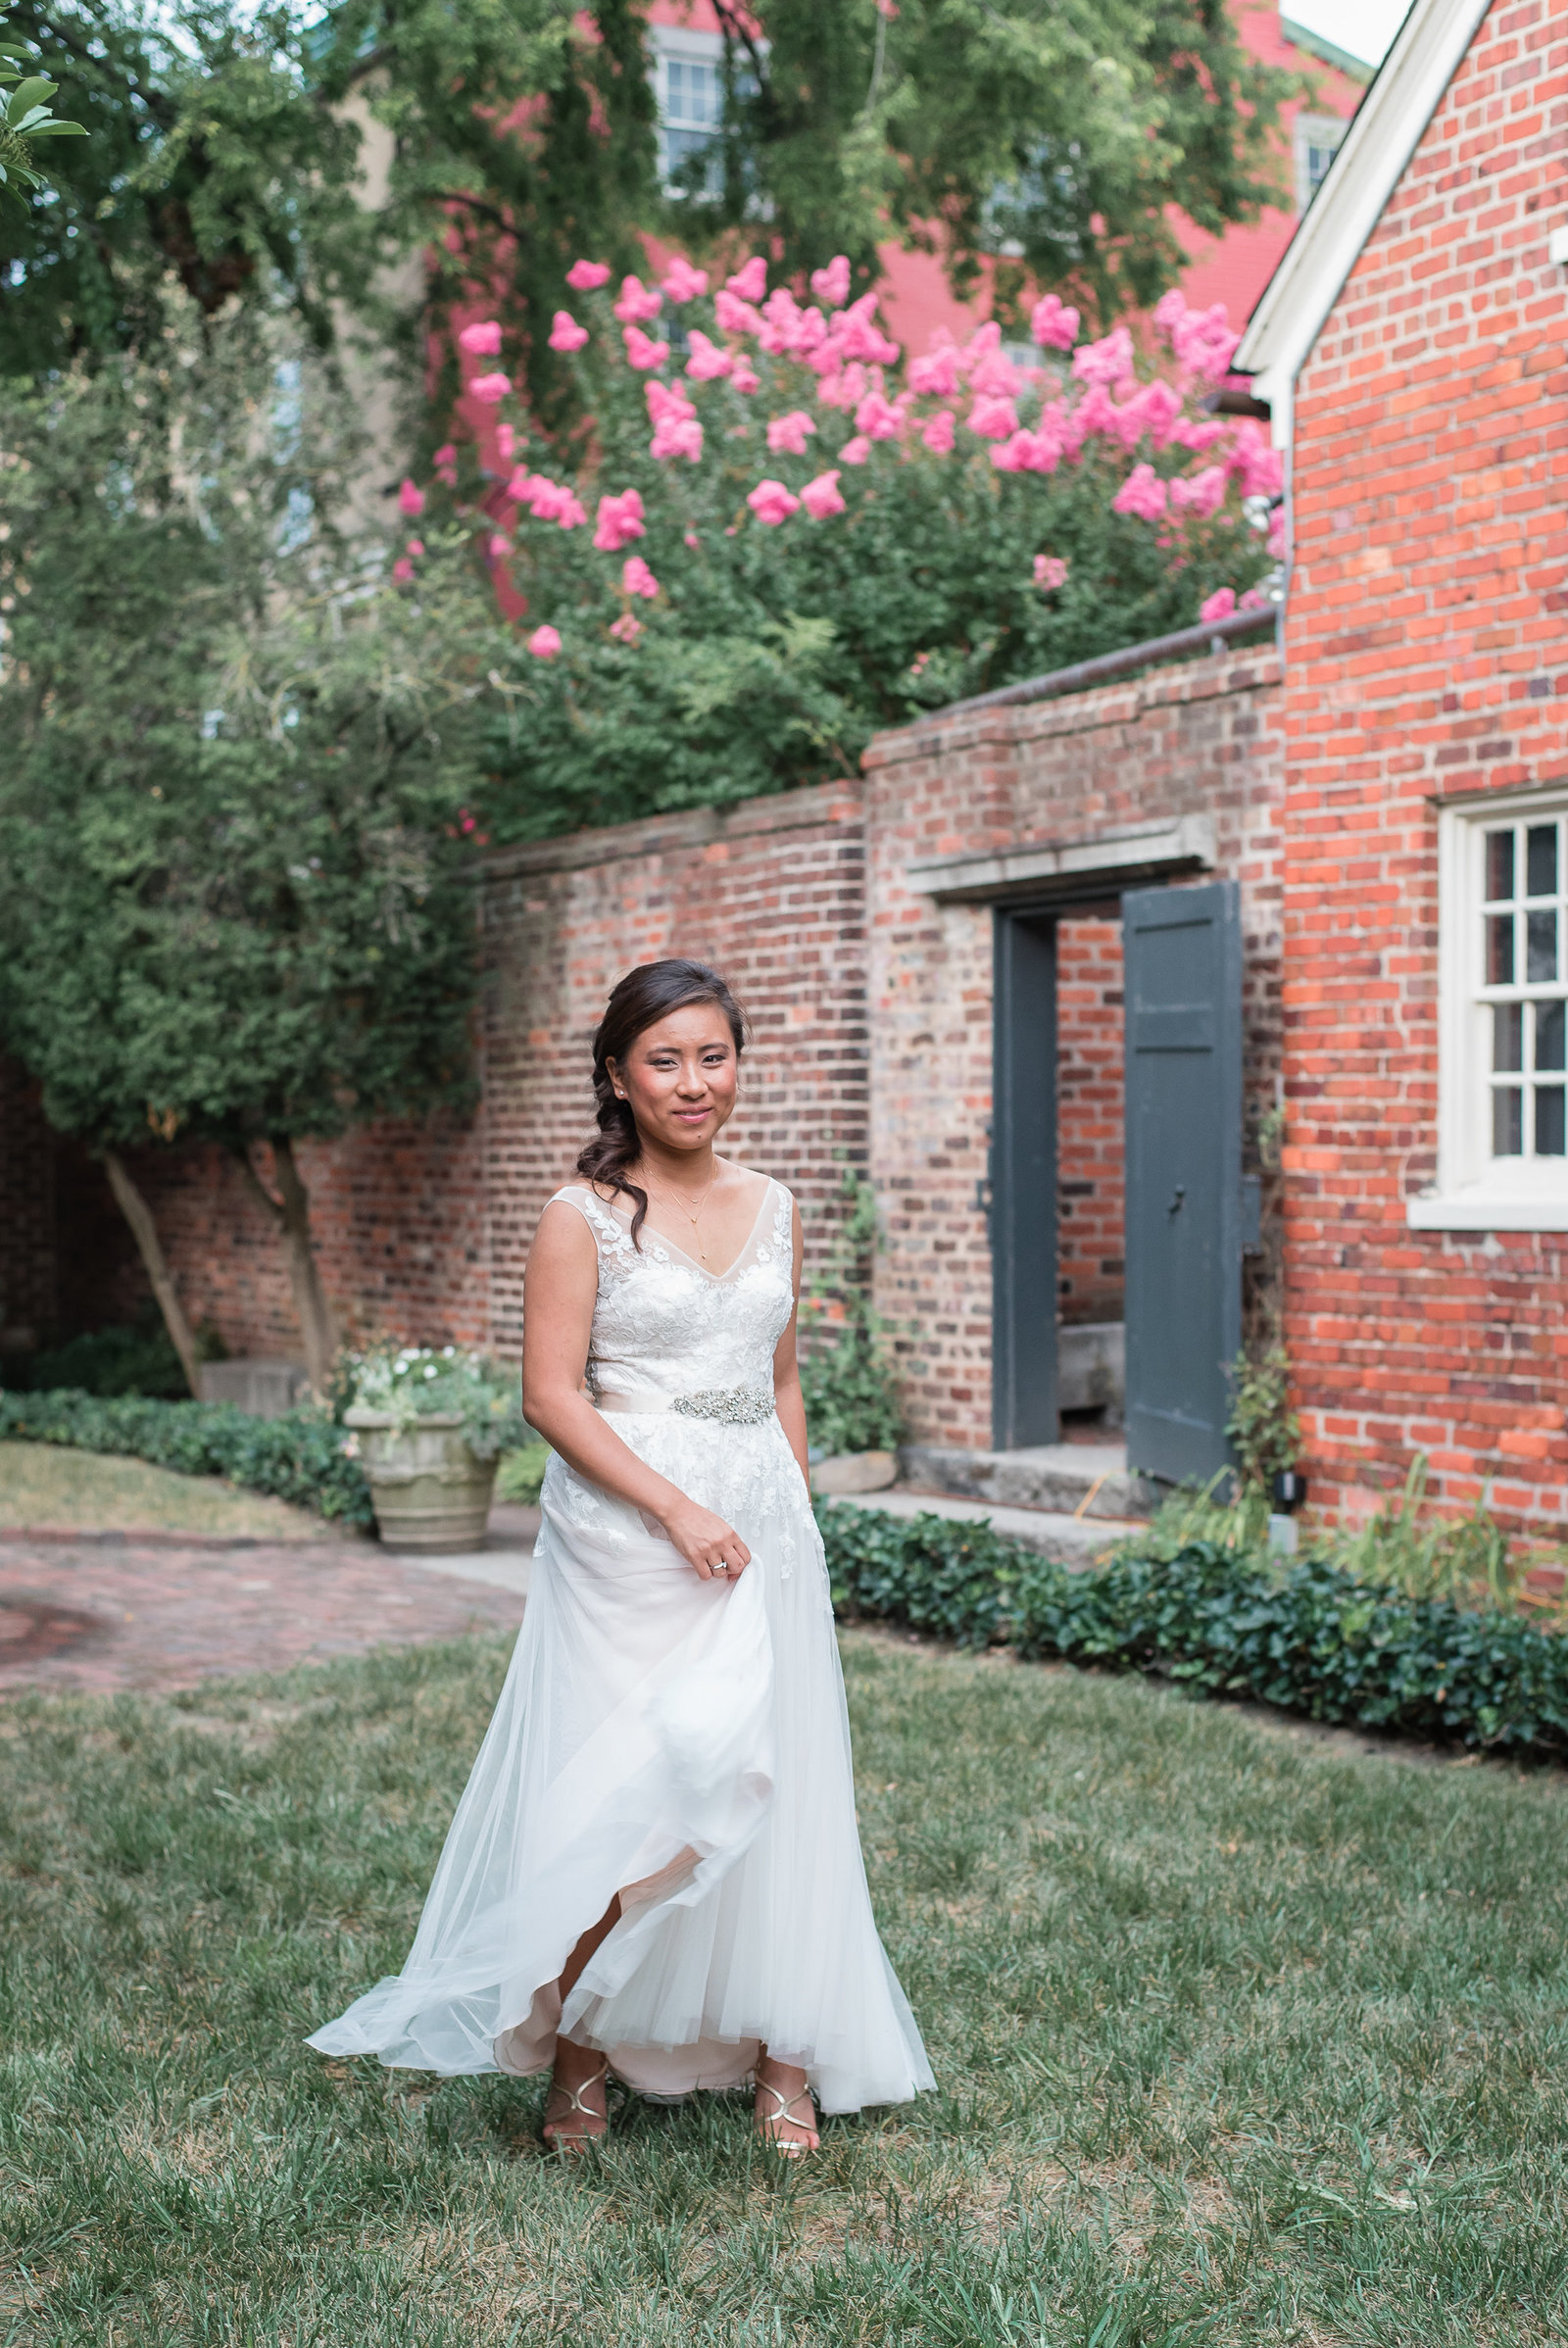 Christina-and-Ben-Poe-Museum-Wedding-Melissa-Desjardins-Photograpphy-7